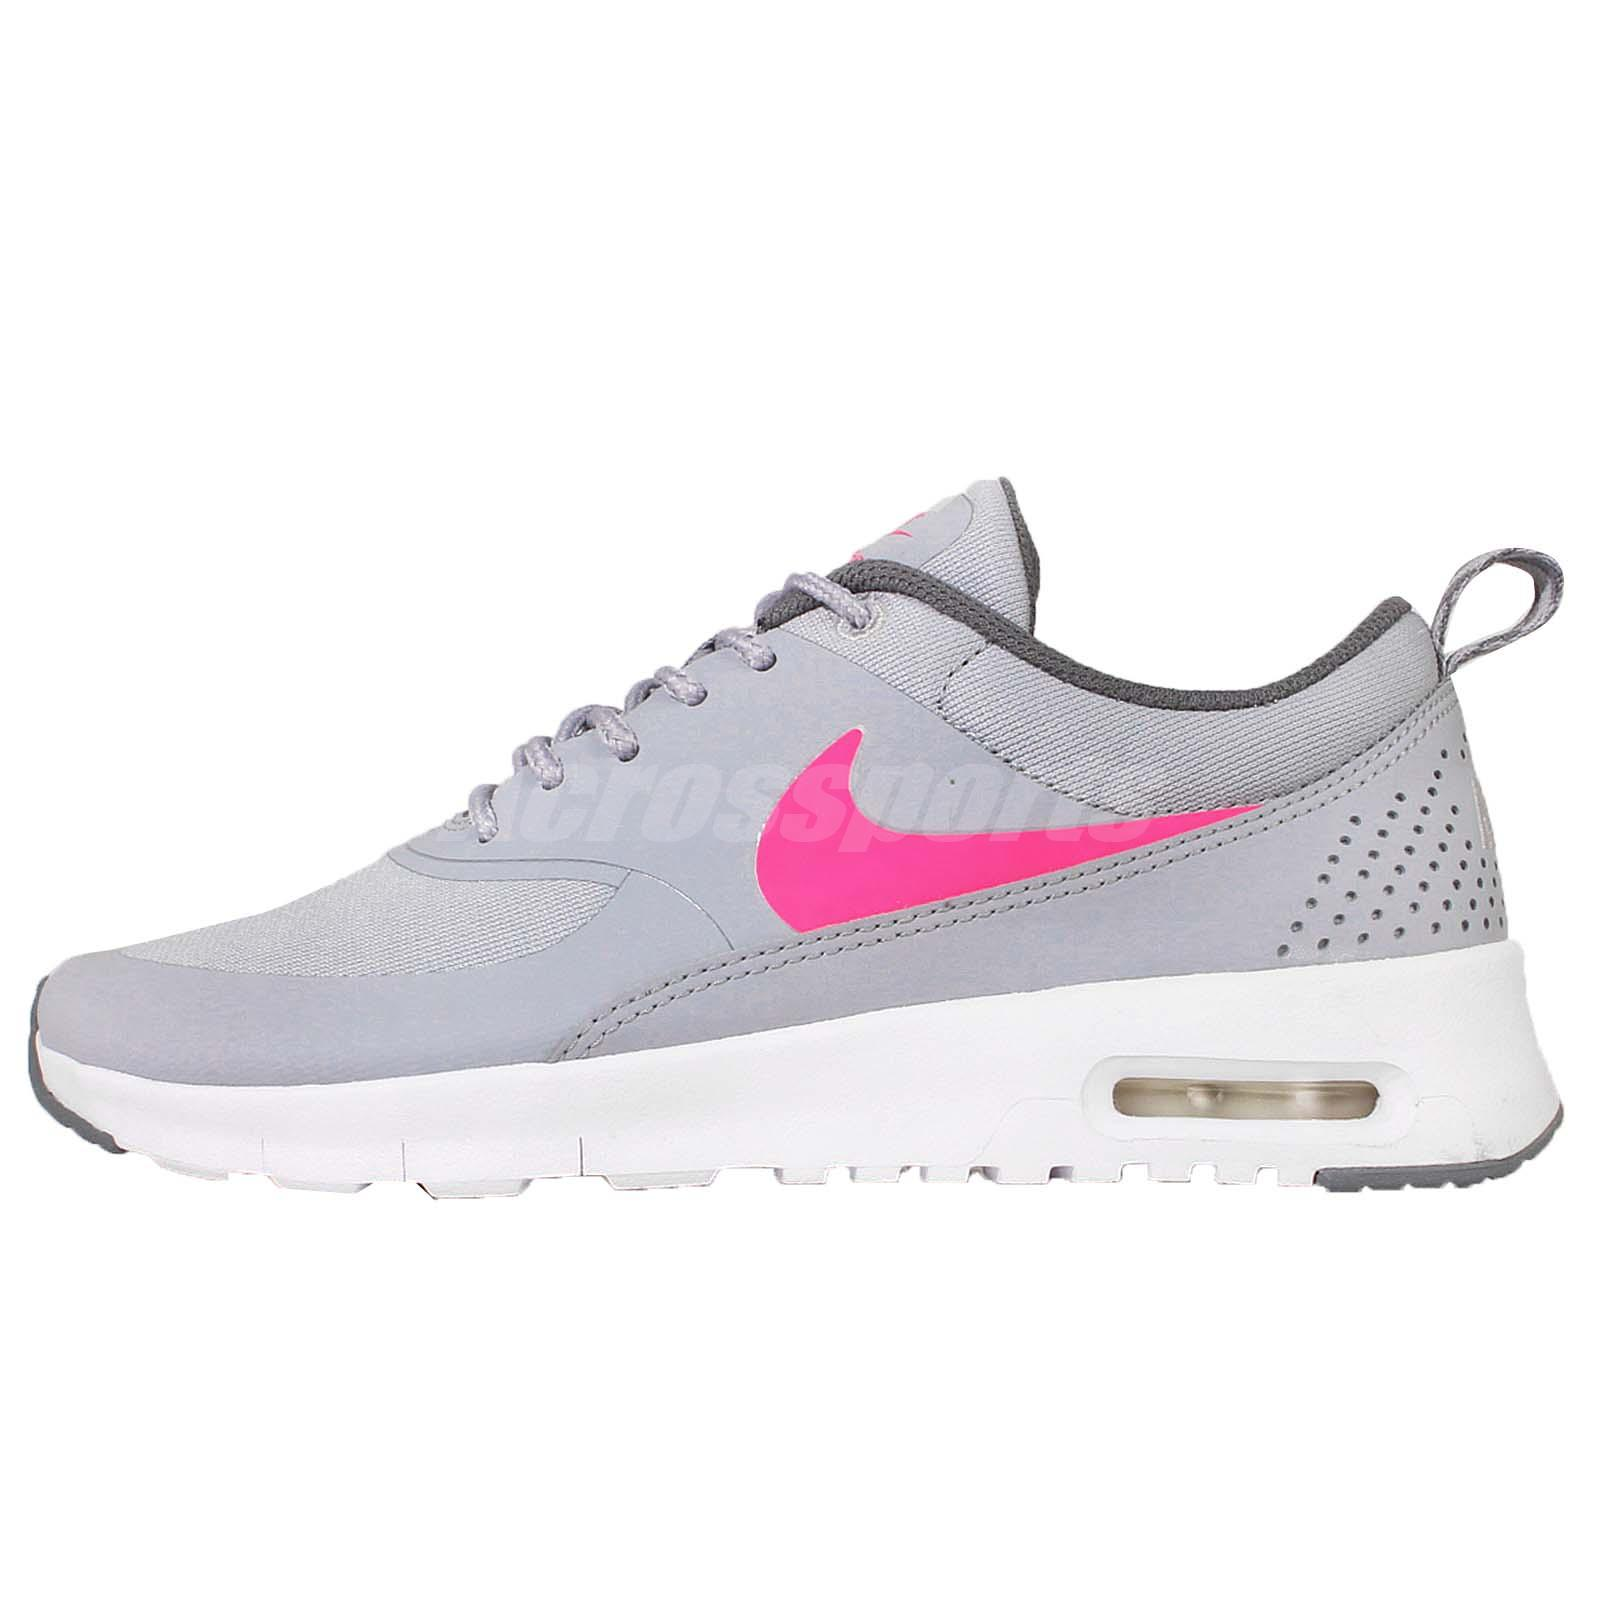 nike air max thea pink trainers for girls